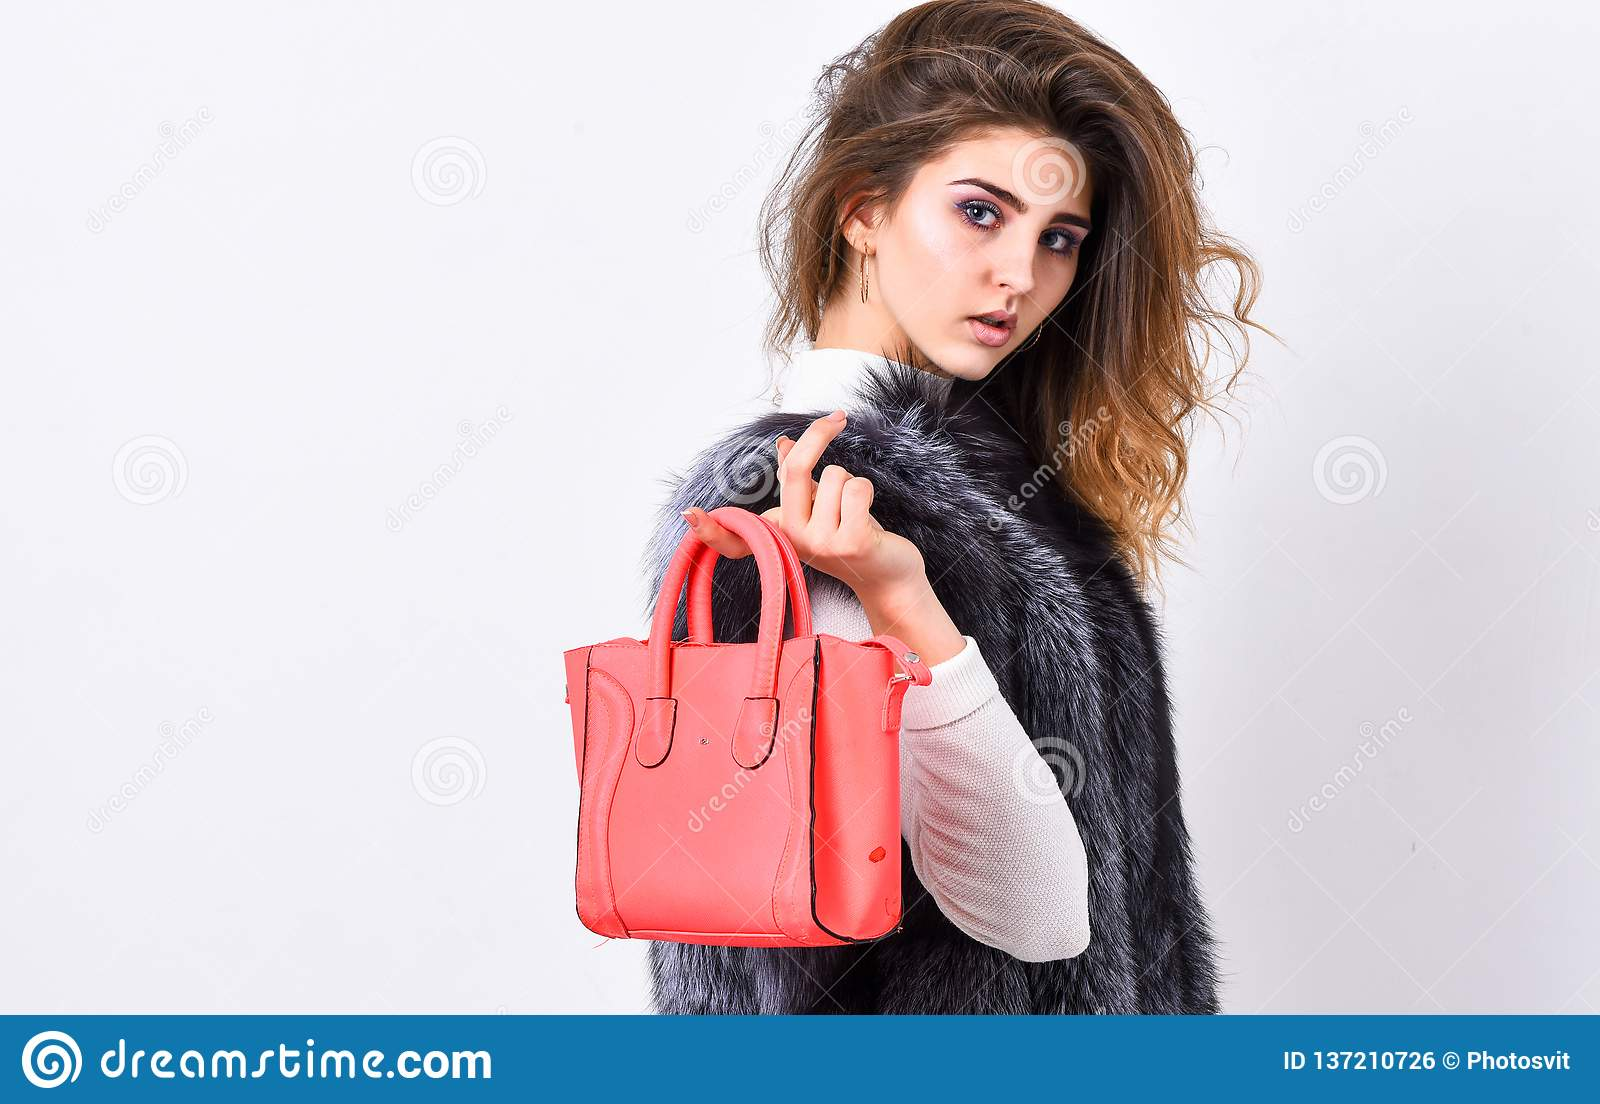 ddf1277c Woman in fur coat with handbag on white background. Girl fashion lady  stylish hairstyle wear mink fur coat. Fashion stylish accessory. Fashion  and shopping ...